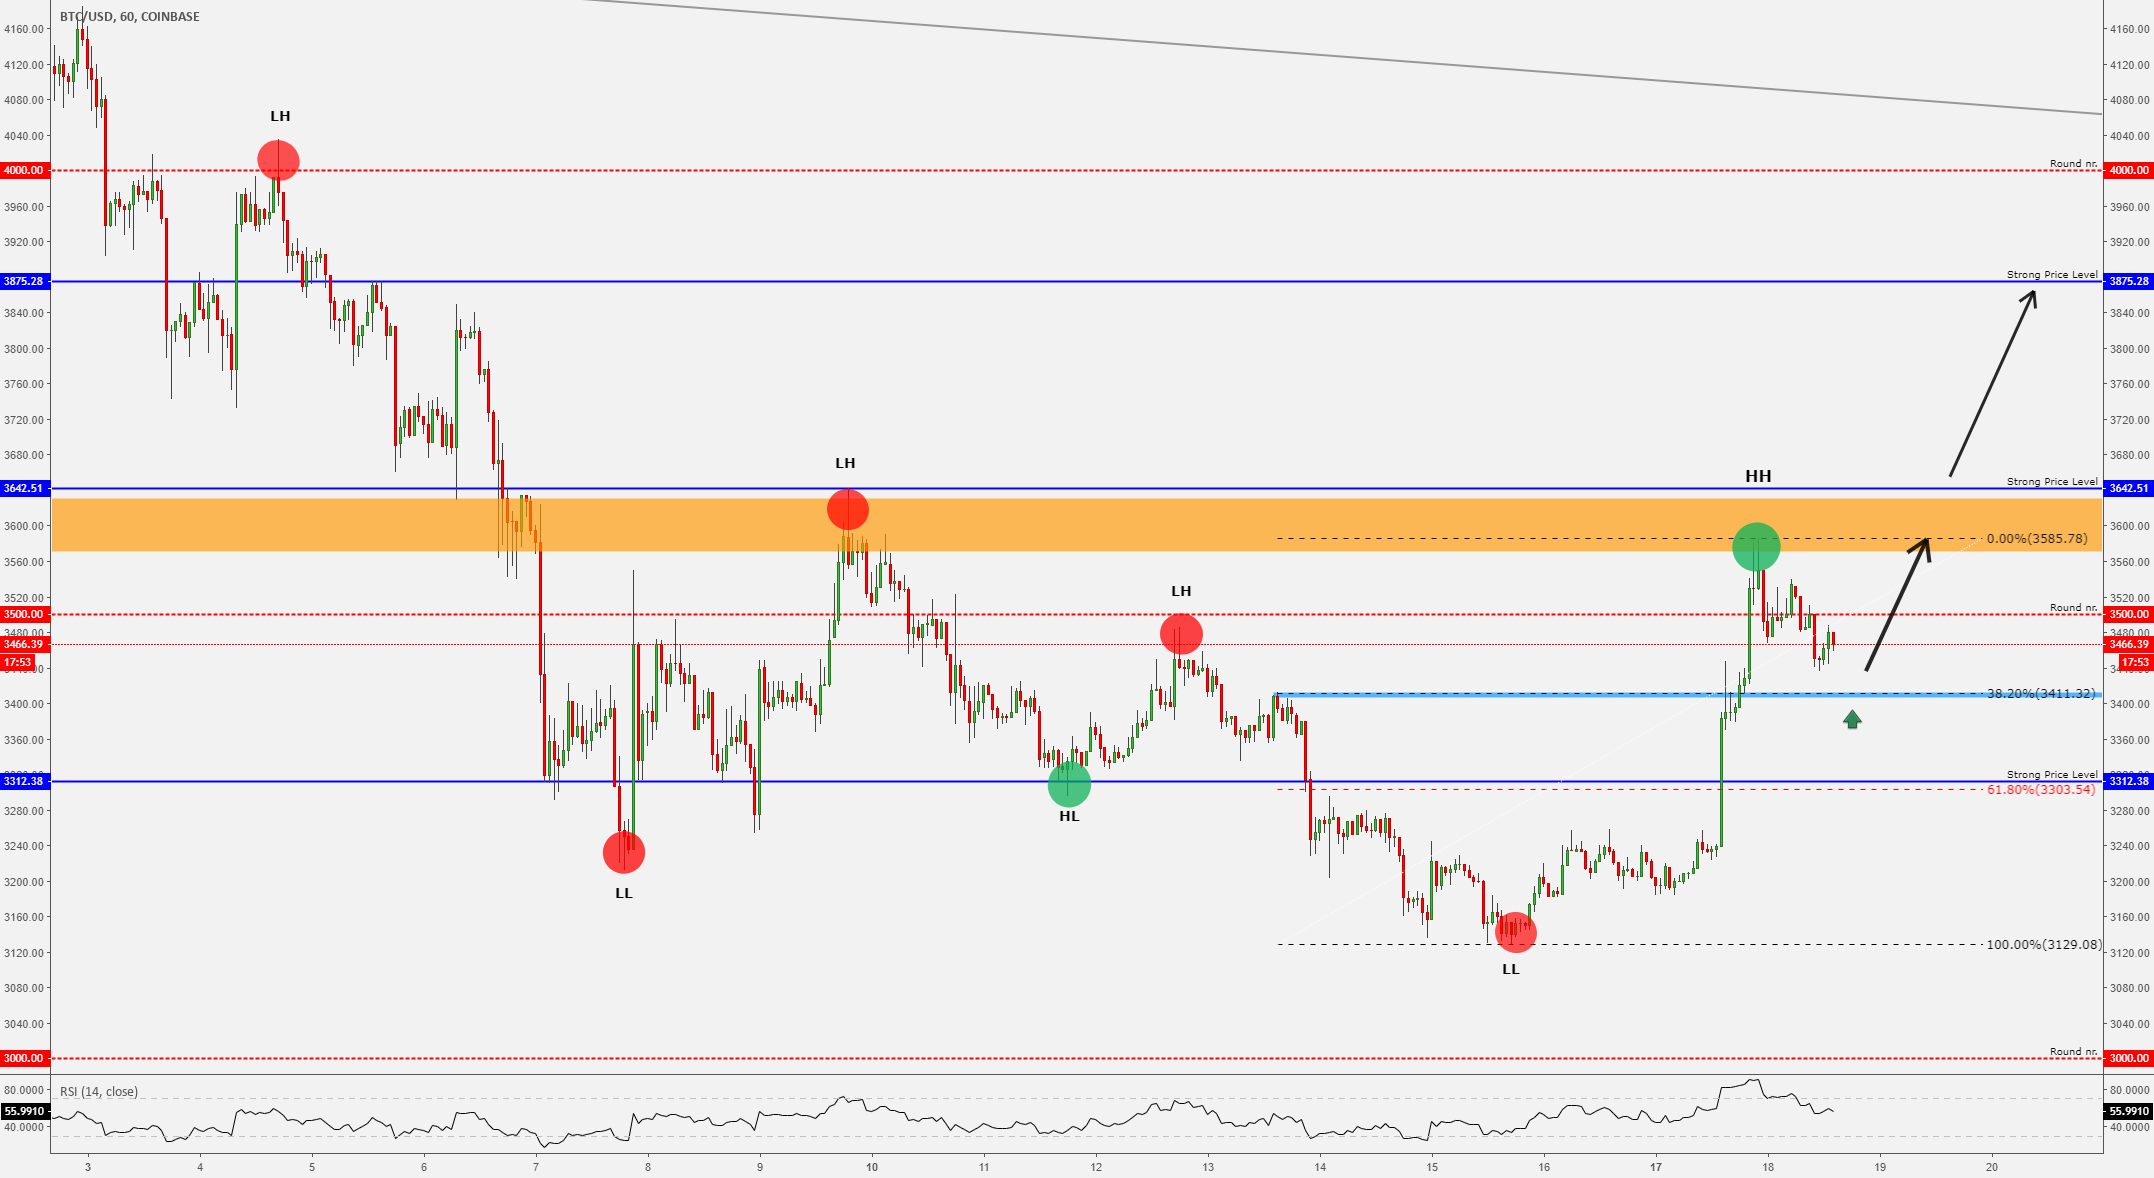 """""""BITCOIN - Perfect Bounce Area!!"""" by trader VaidoVeek — published December 20, 2018 — TradingView"""